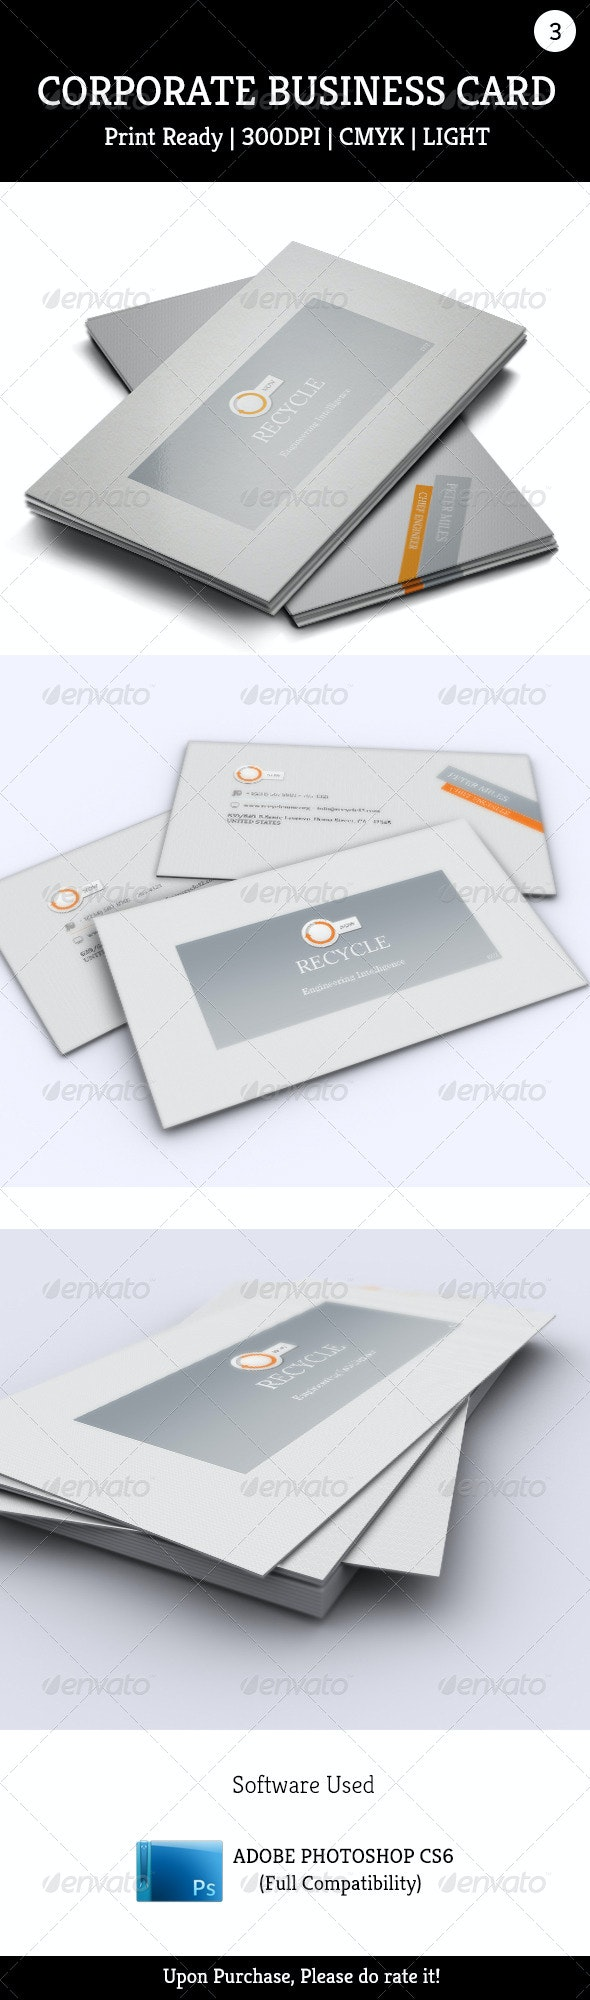 Corporate Business Card 003 - Corporate Business Cards